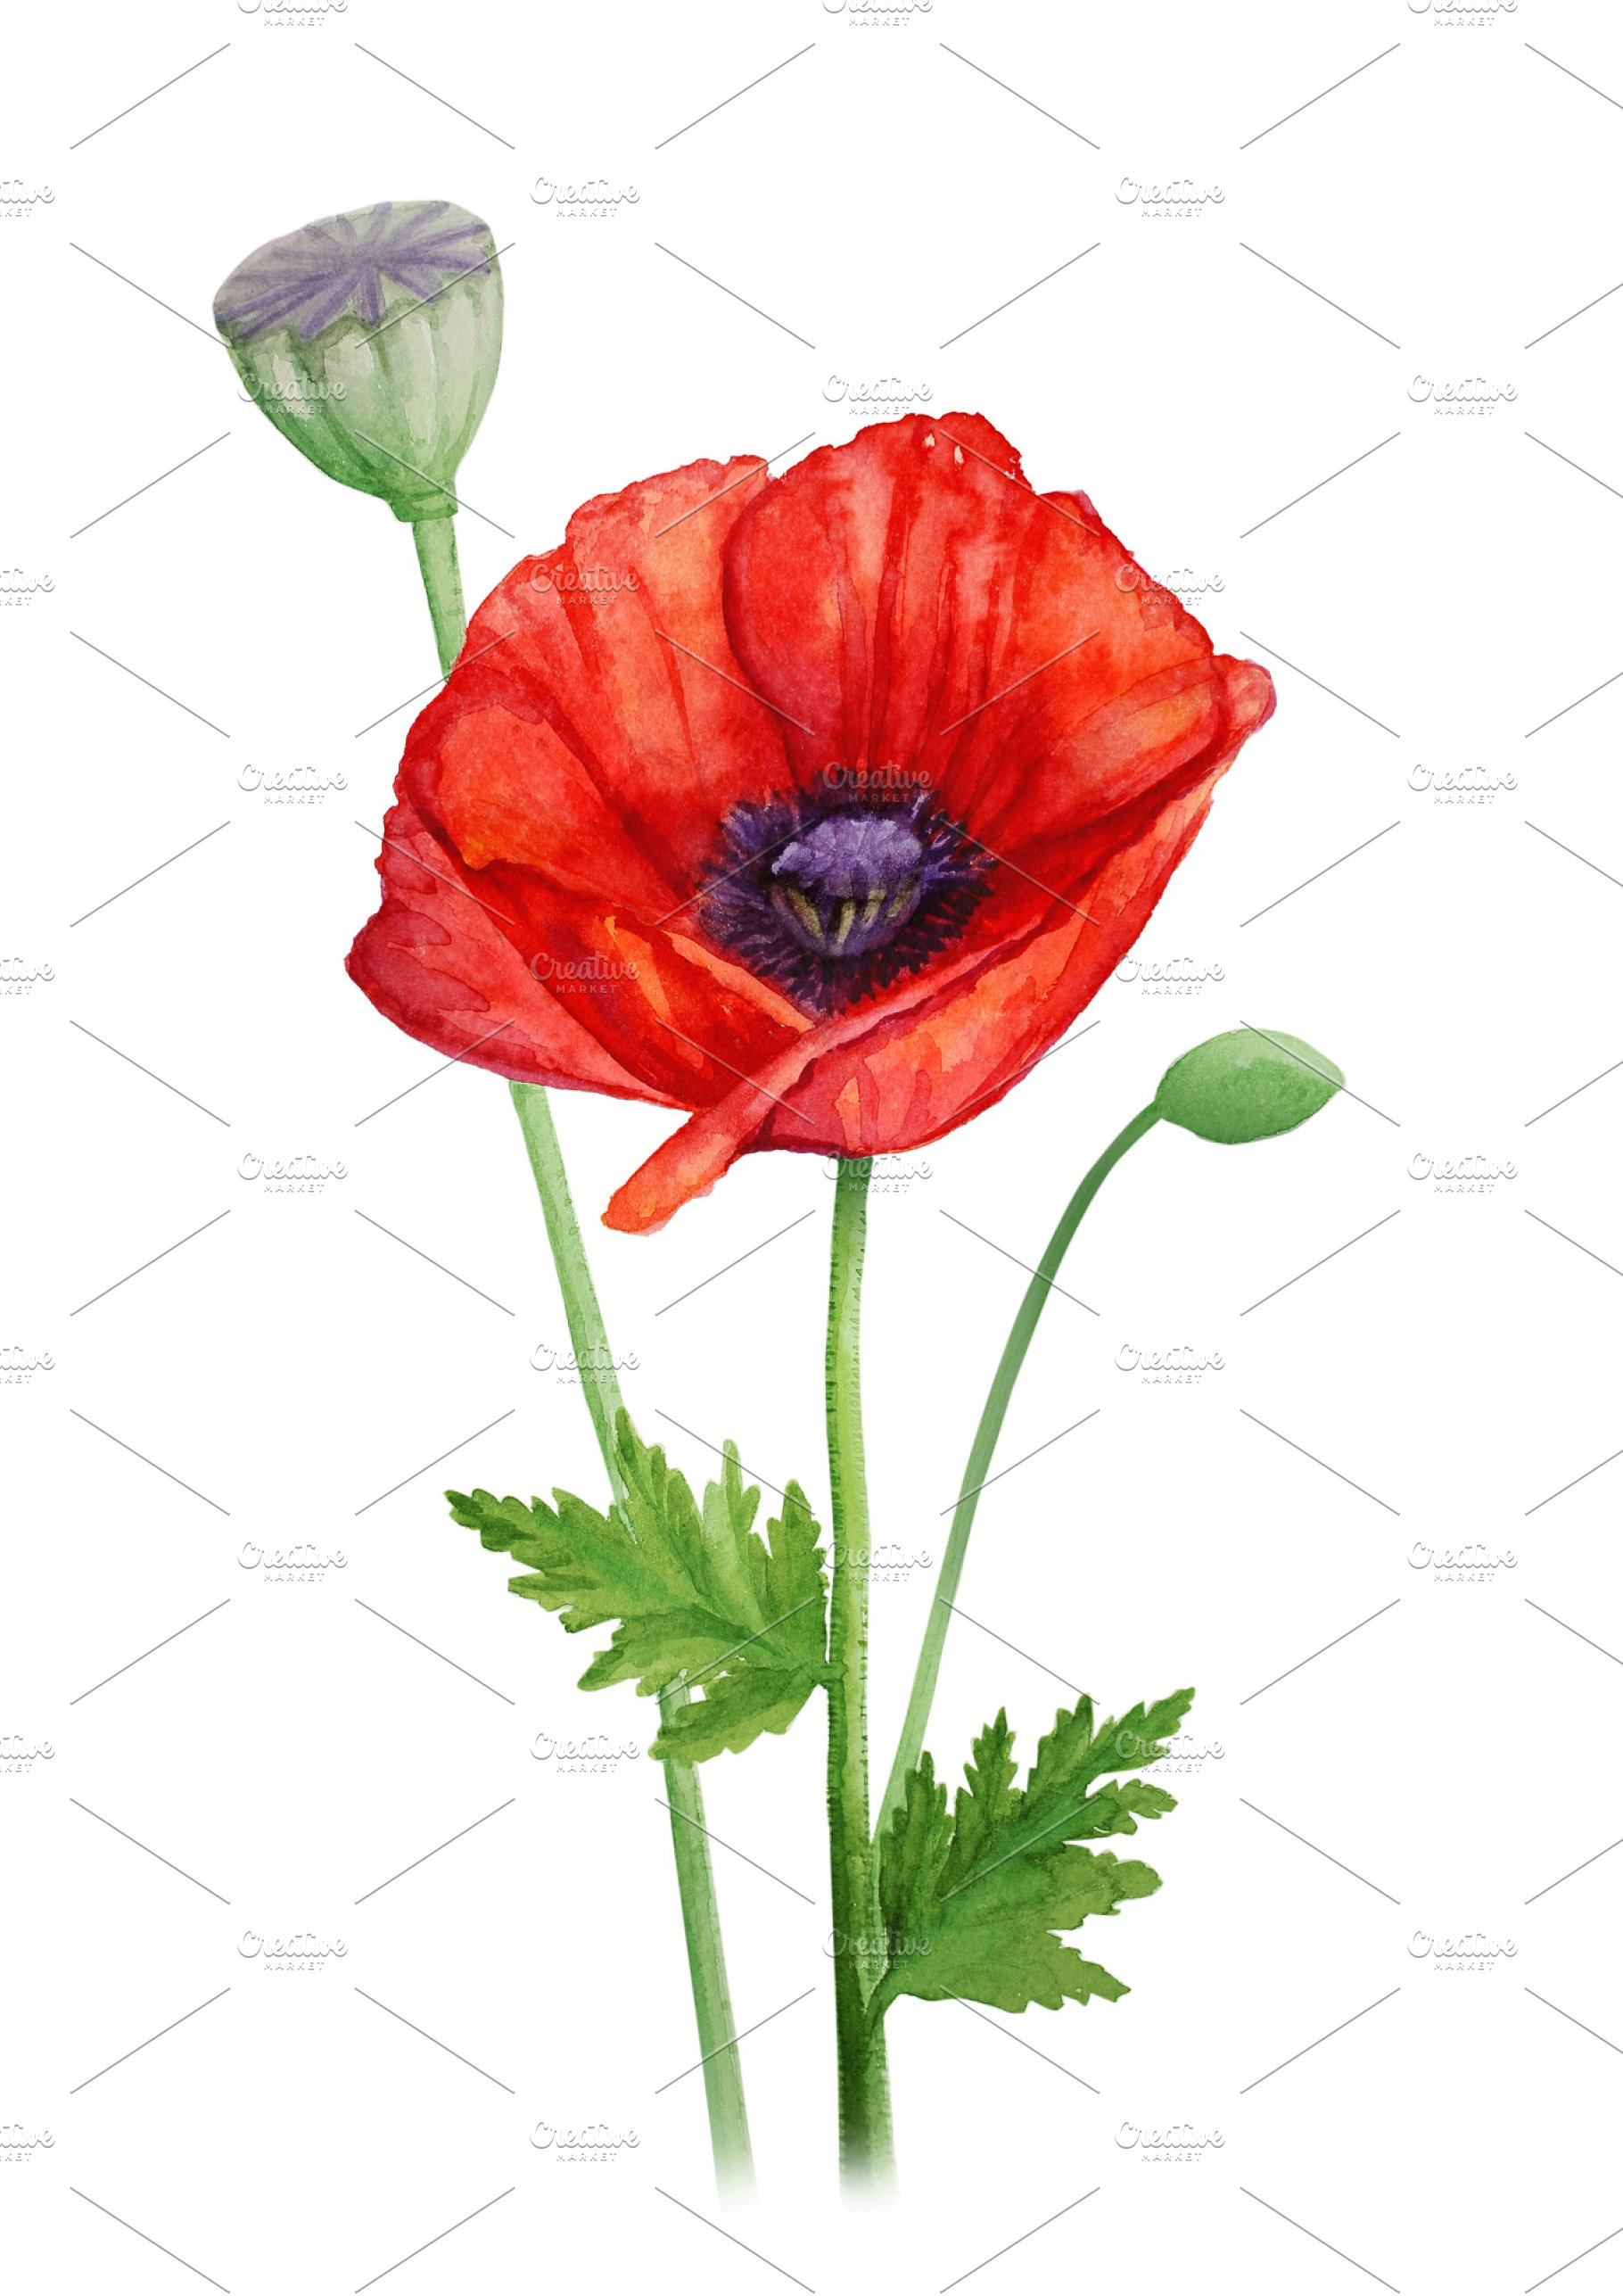 Red Poppy Flower On A Stalk Watercolor Illustration High